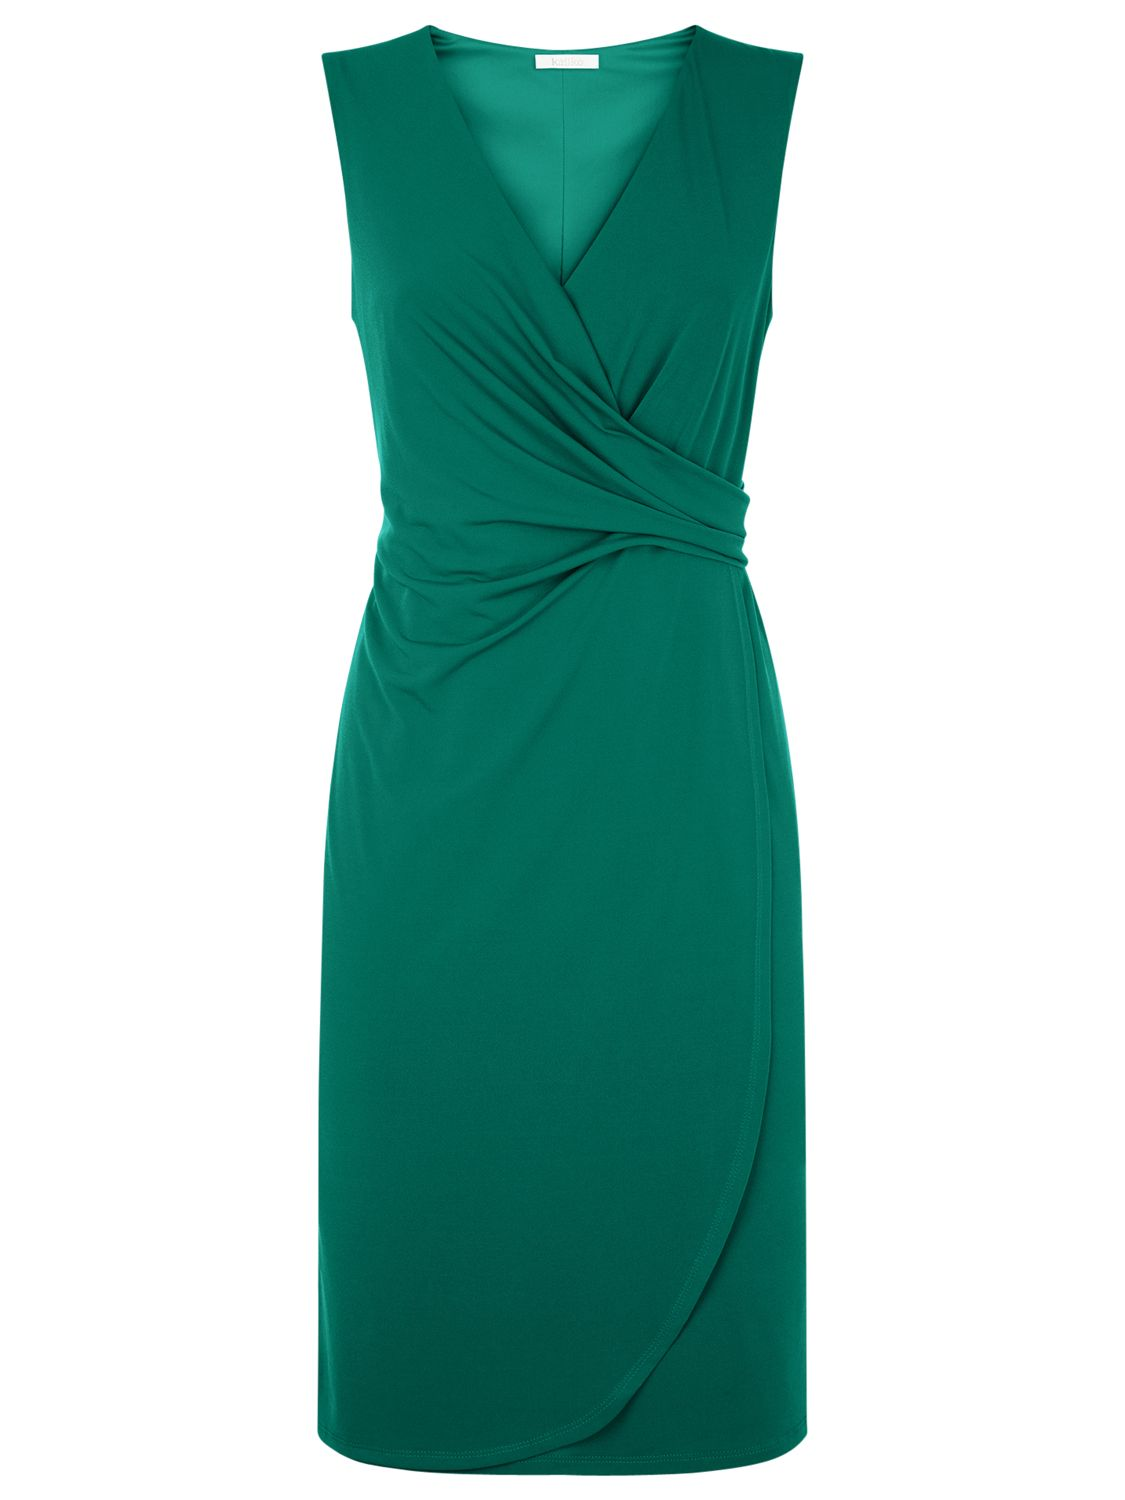 kaliko wrap dress jade, kaliko, wrap, dress, jade, 10|18|20|16|14|12|8, clearance, womenswear offers, womens dresses offers, special offers, 20% off selected kaliko, women, inactive womenswear, new reductions, womens dresses, party outfits, party dresses, 1743726